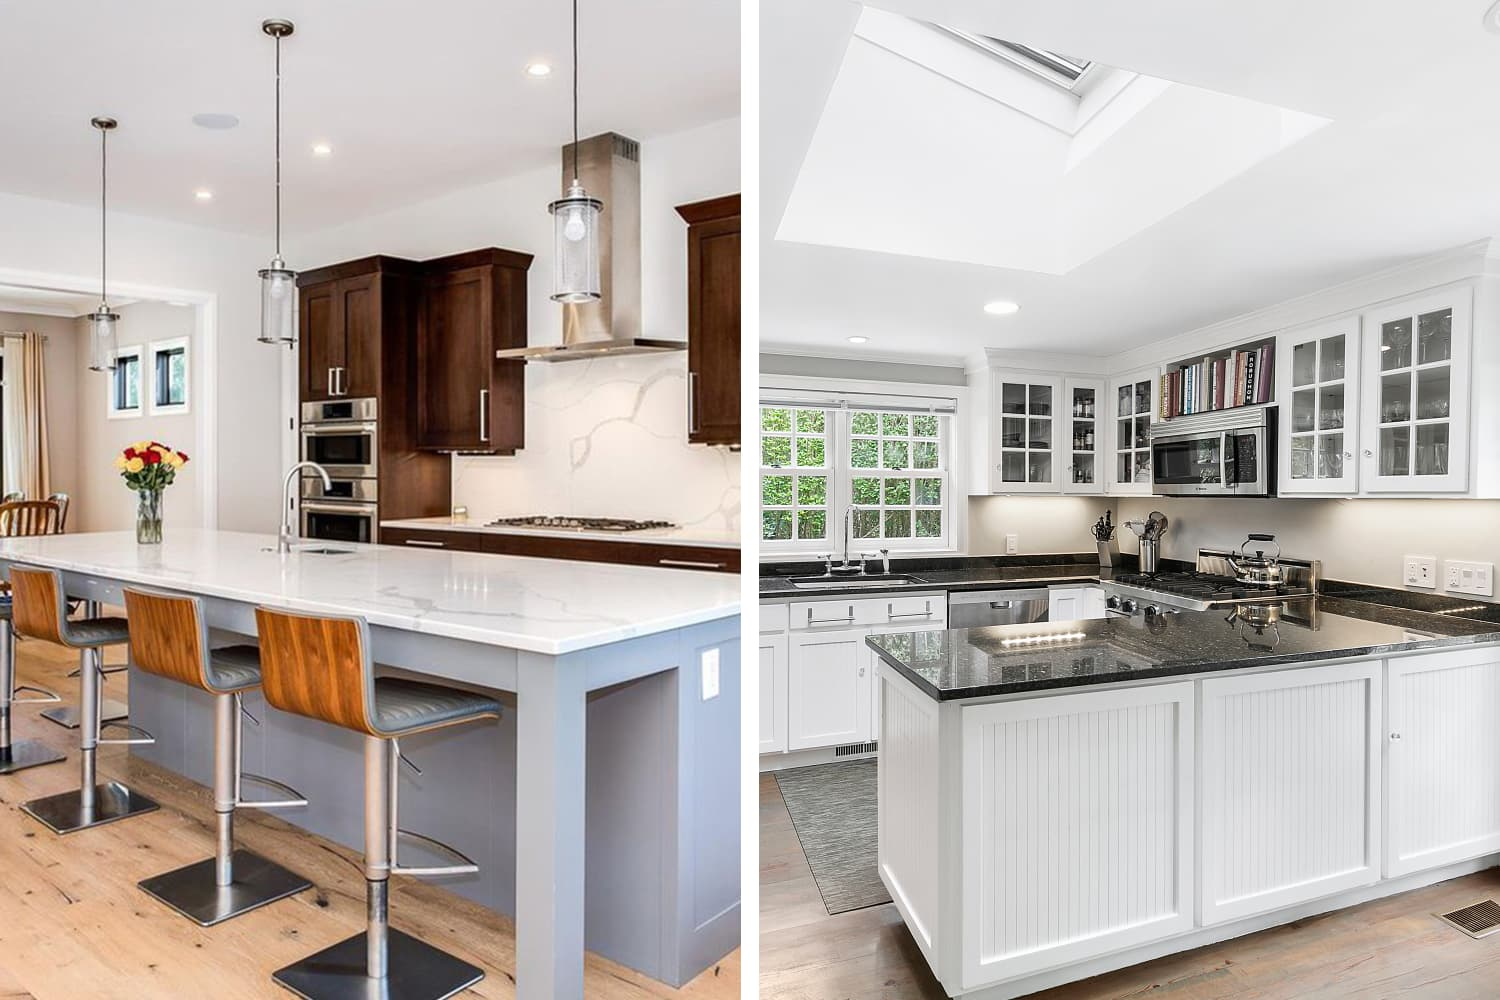 Here's What Kitchens Look Like in Houses That Cost ...